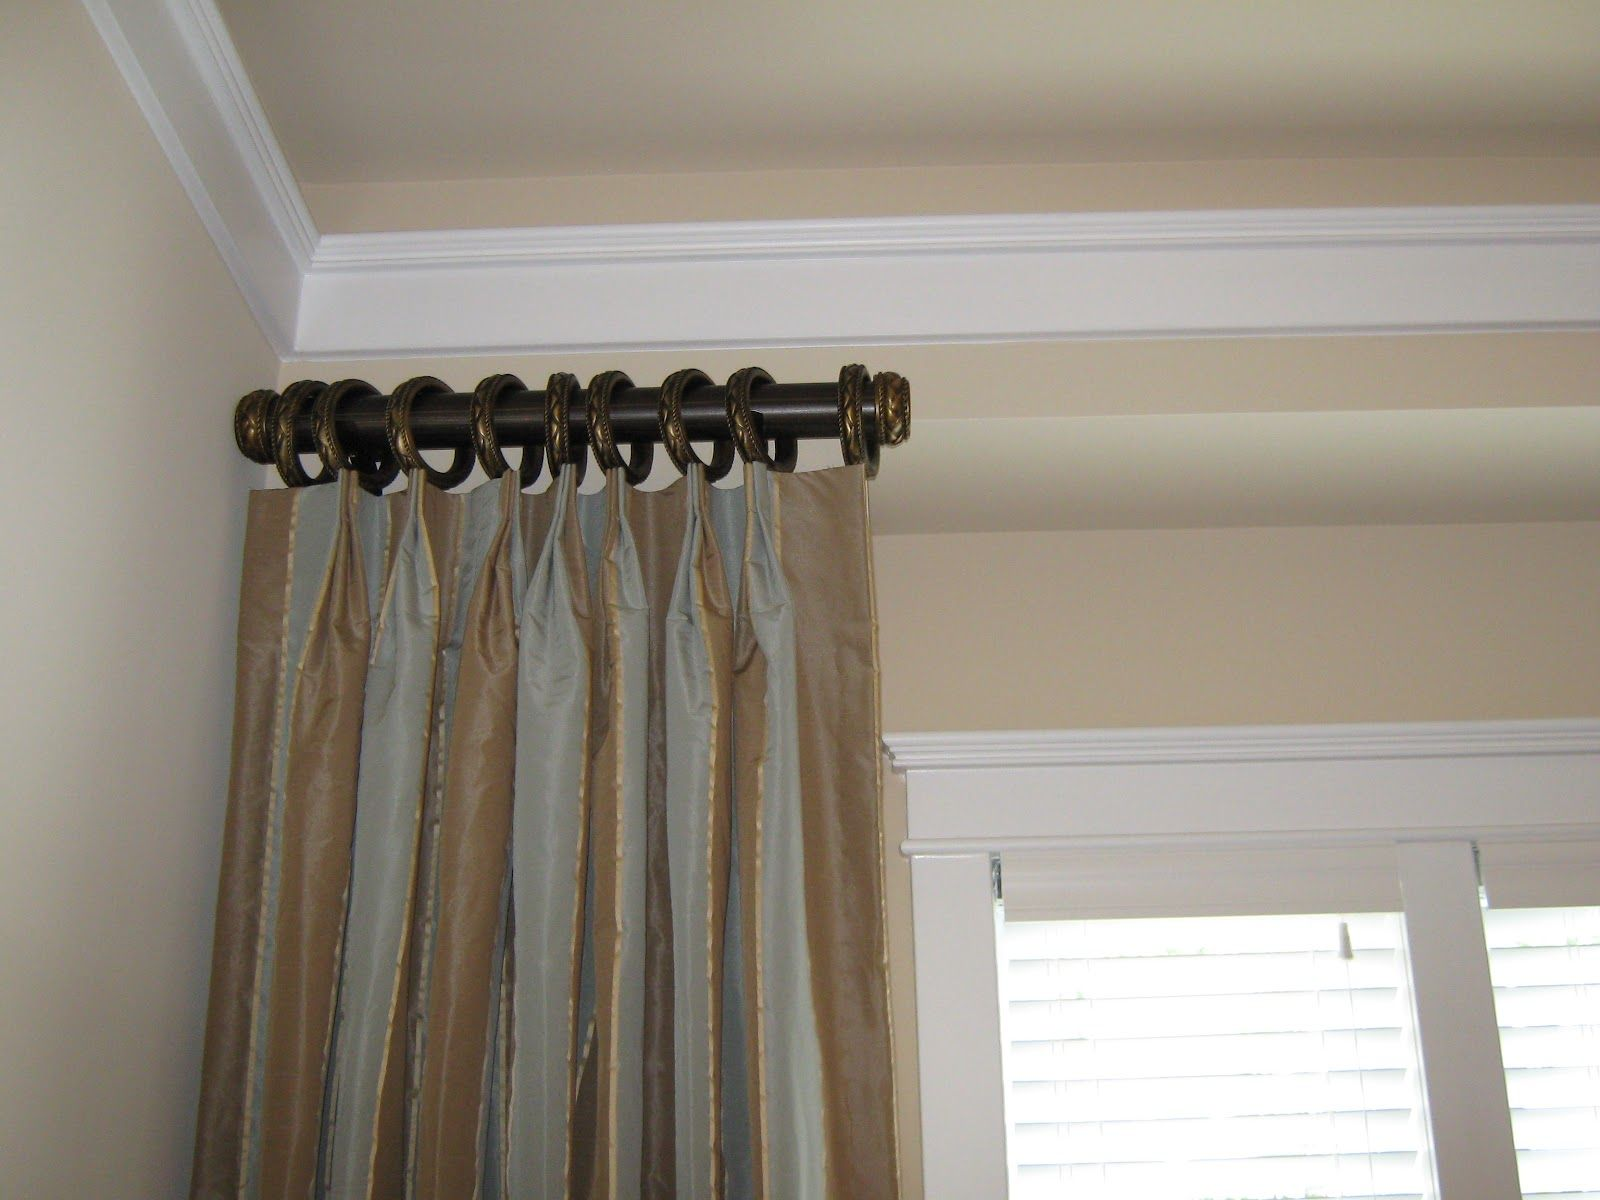 Decorative Side Panel Curtain Rod Panels Is A Decorative Use Of Drapery Hardware For